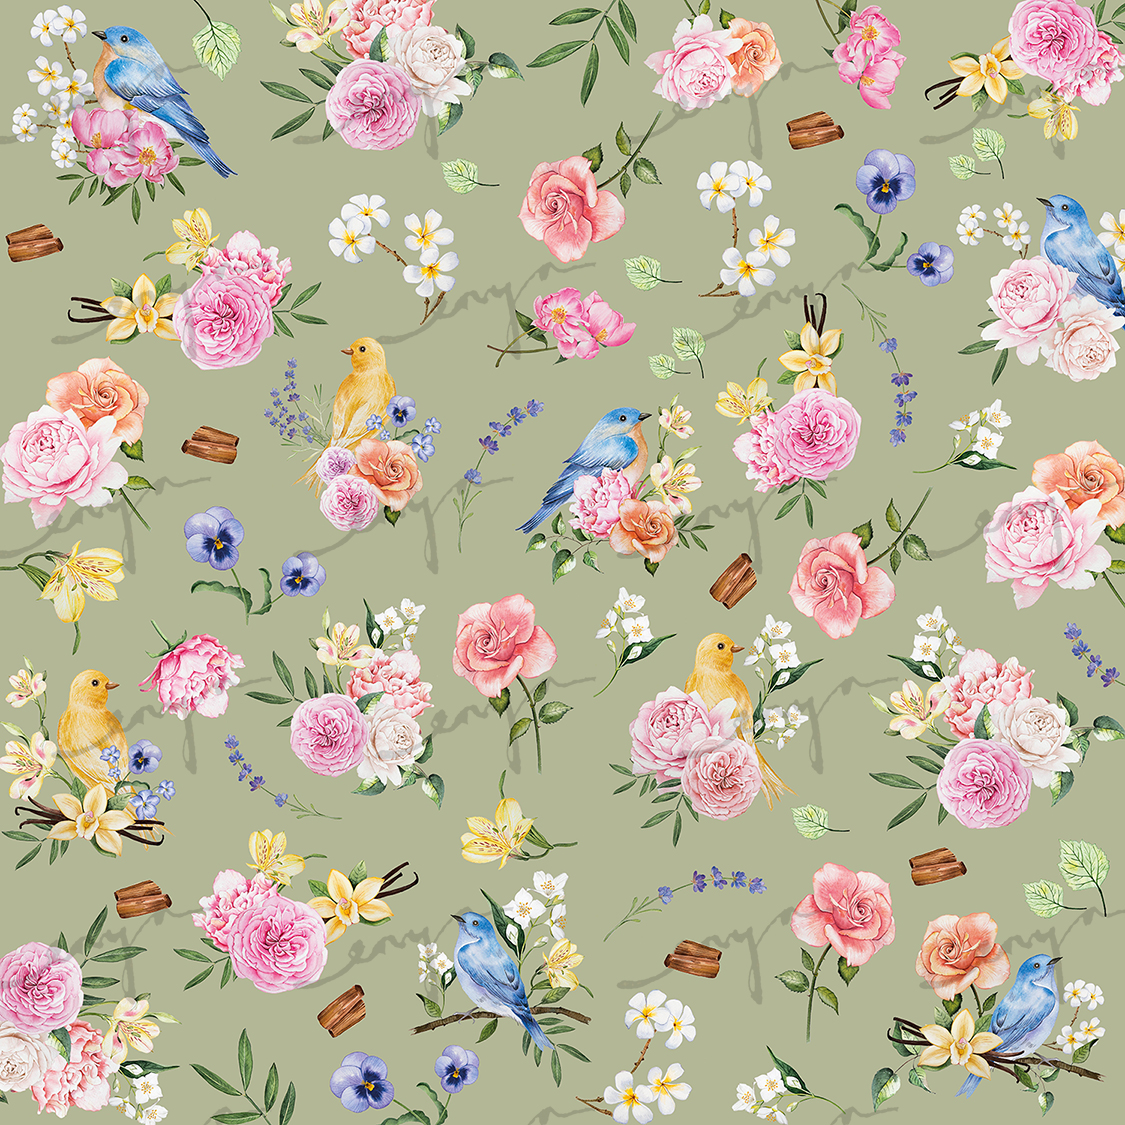 Pattern design for L'Odore